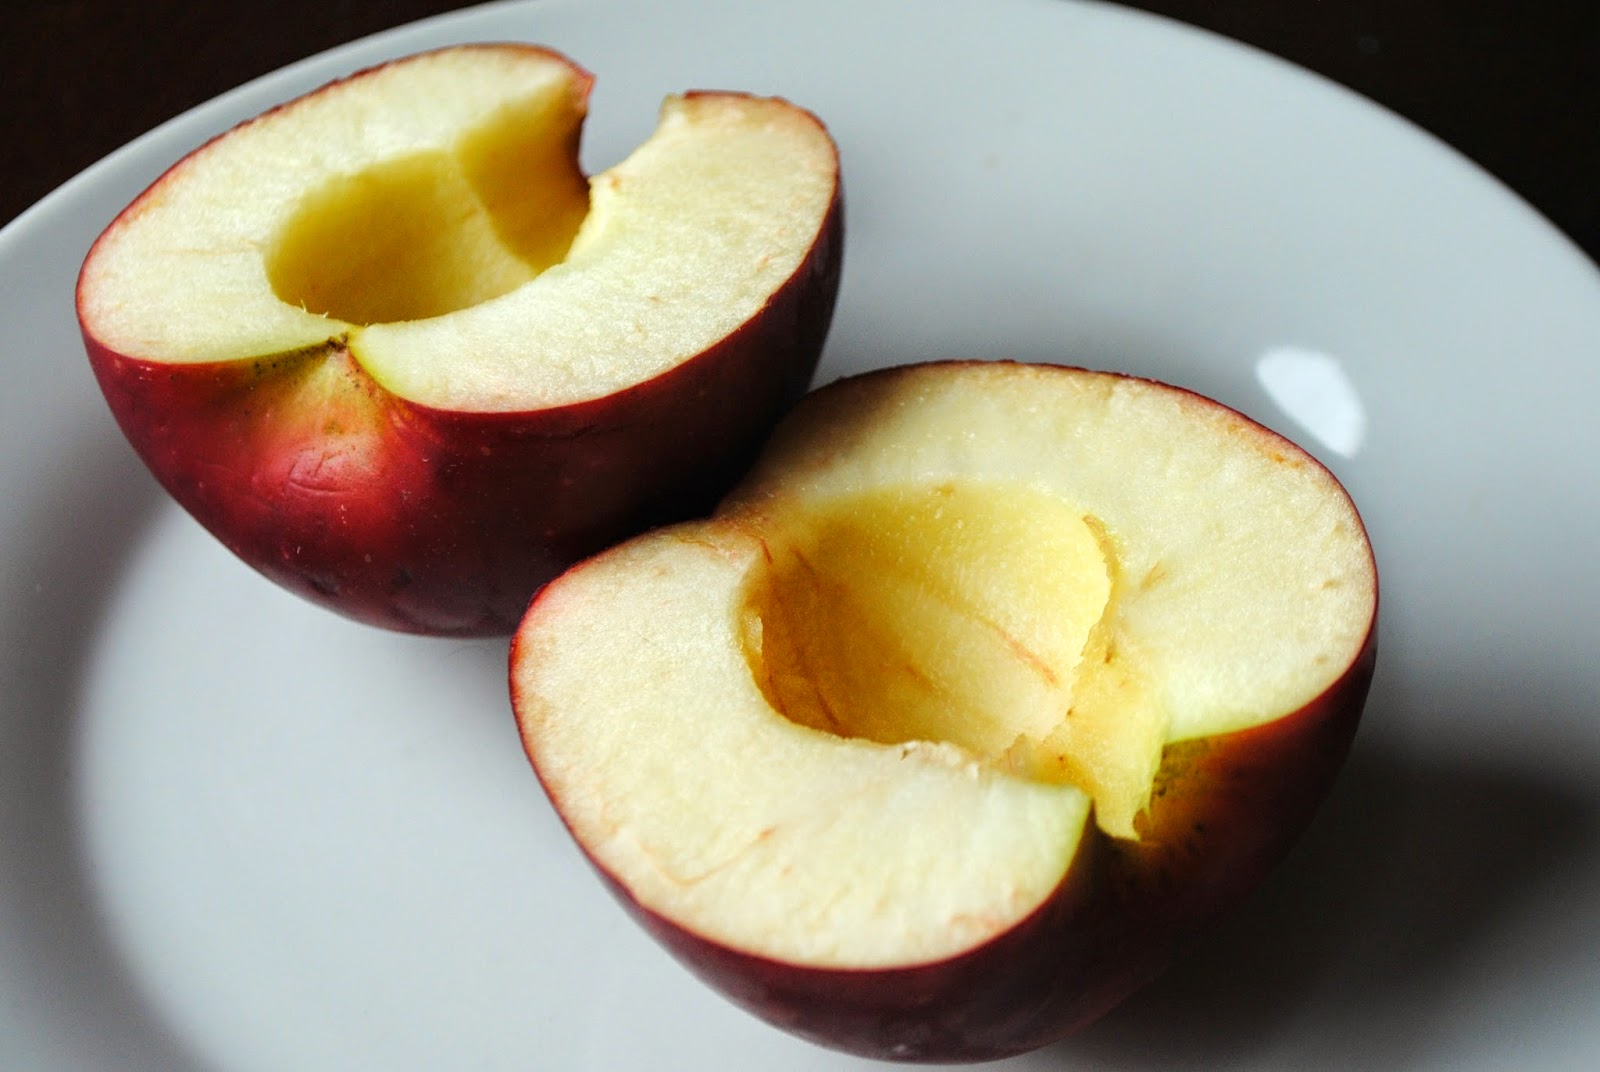 Cut apple in half & core